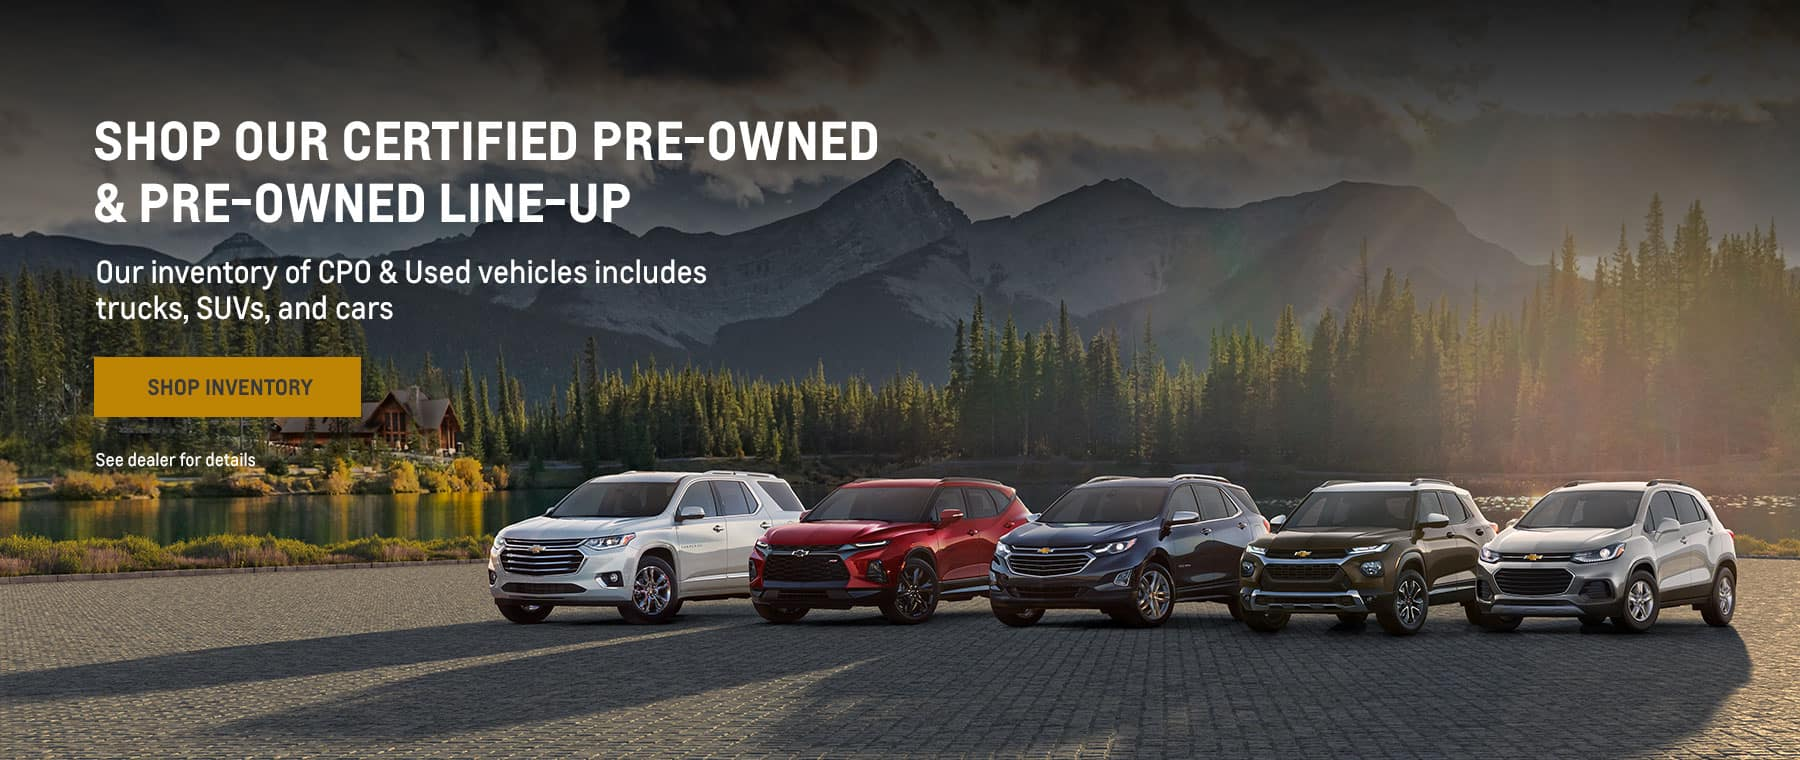 Shop our Certified Pre-Owned & Pre-Owned Line-up